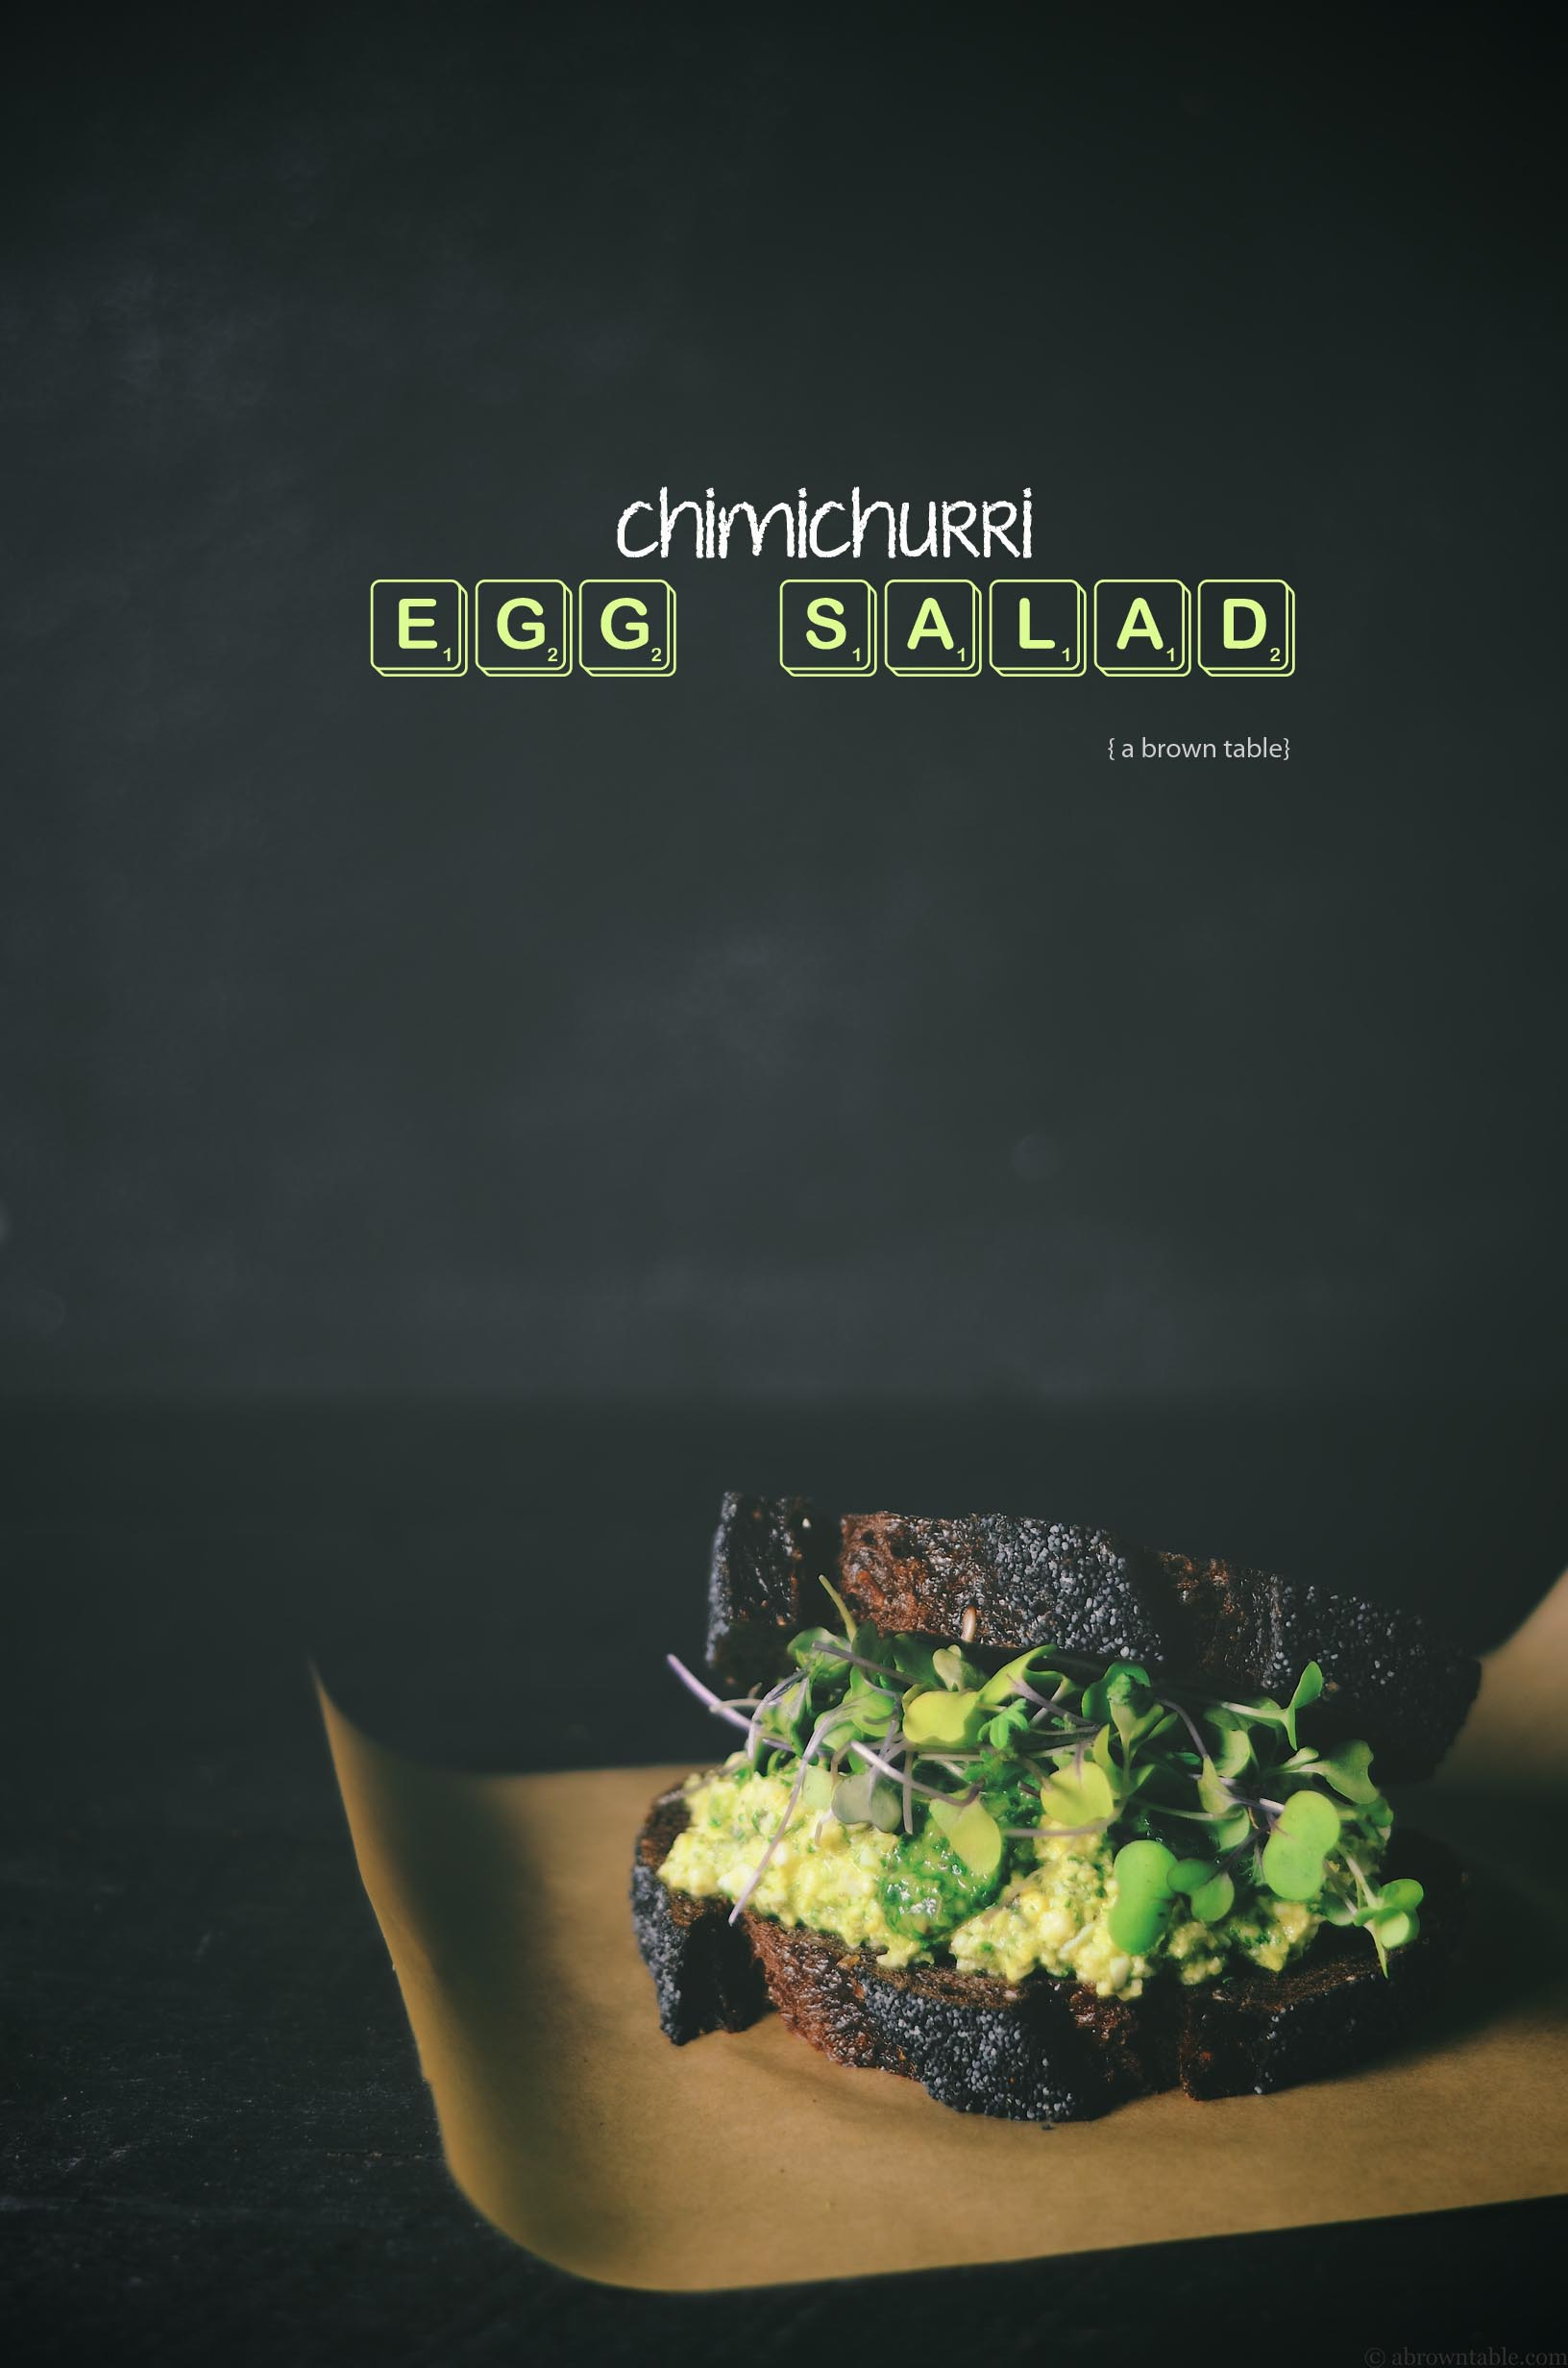 chimichurri egg salad